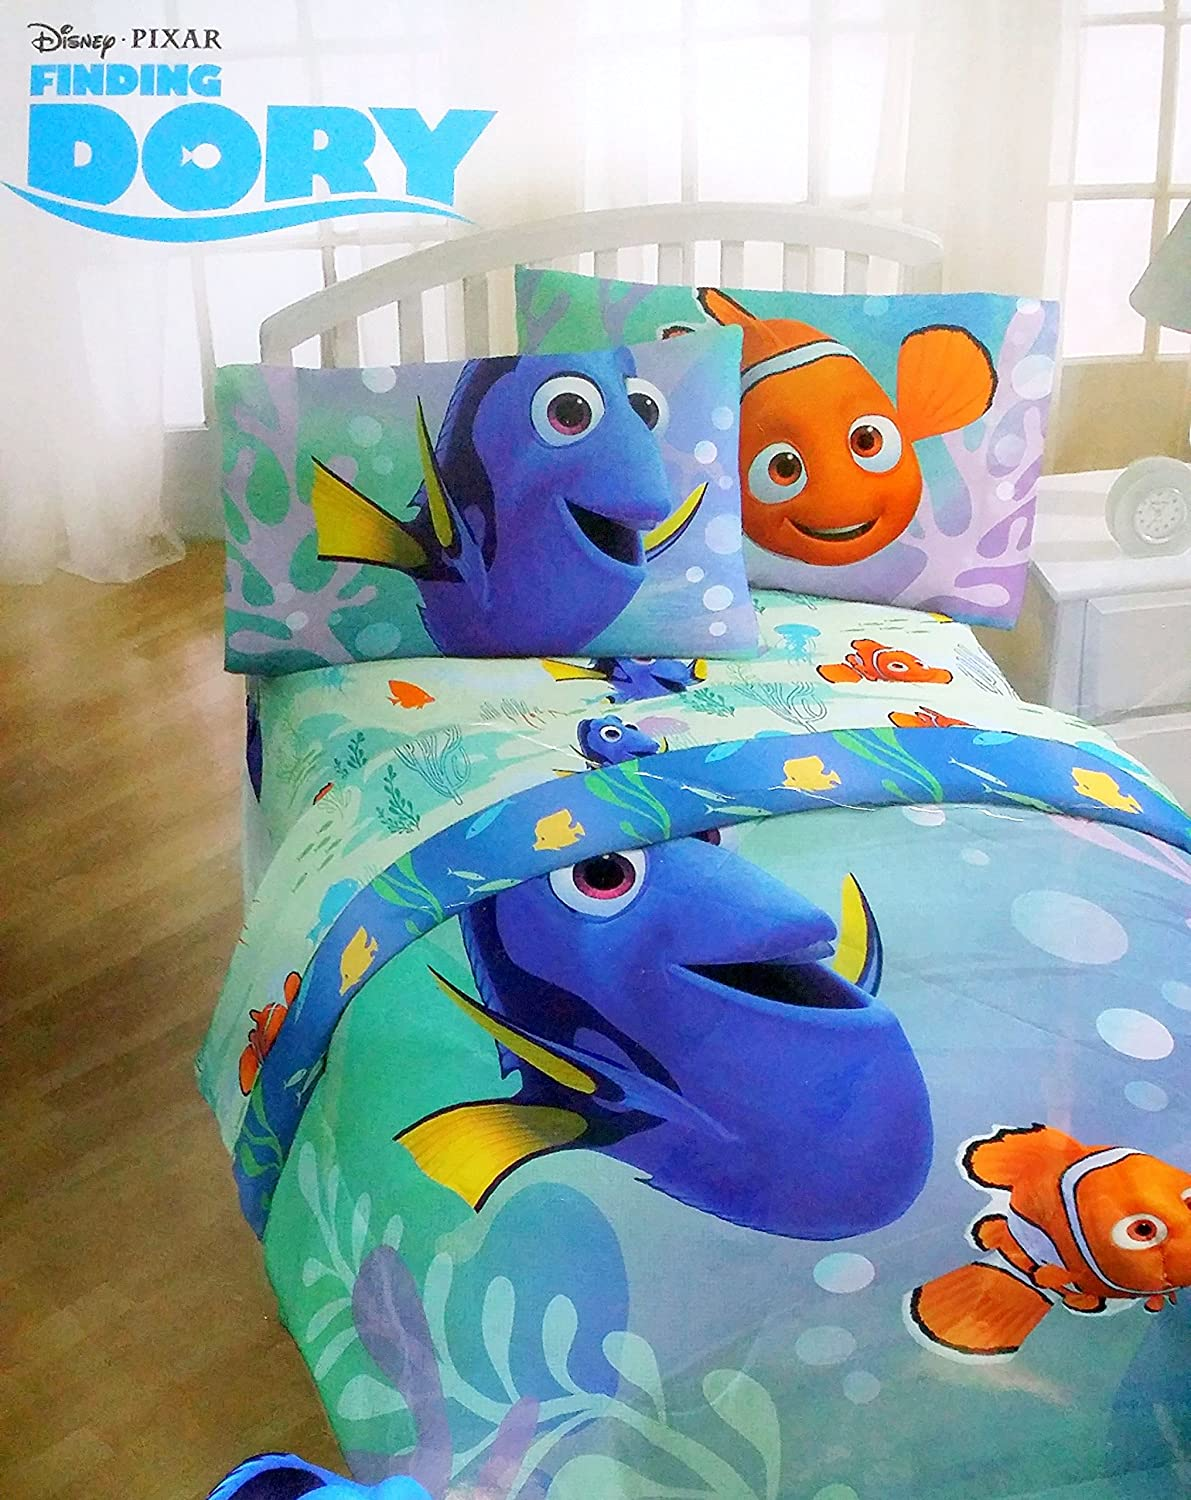 Disney Pixar Finding Dory Twin Sized 4 Piece Bedding Set - Reversible Comforter and Sheet Set Jay Franco and Sons Inc.